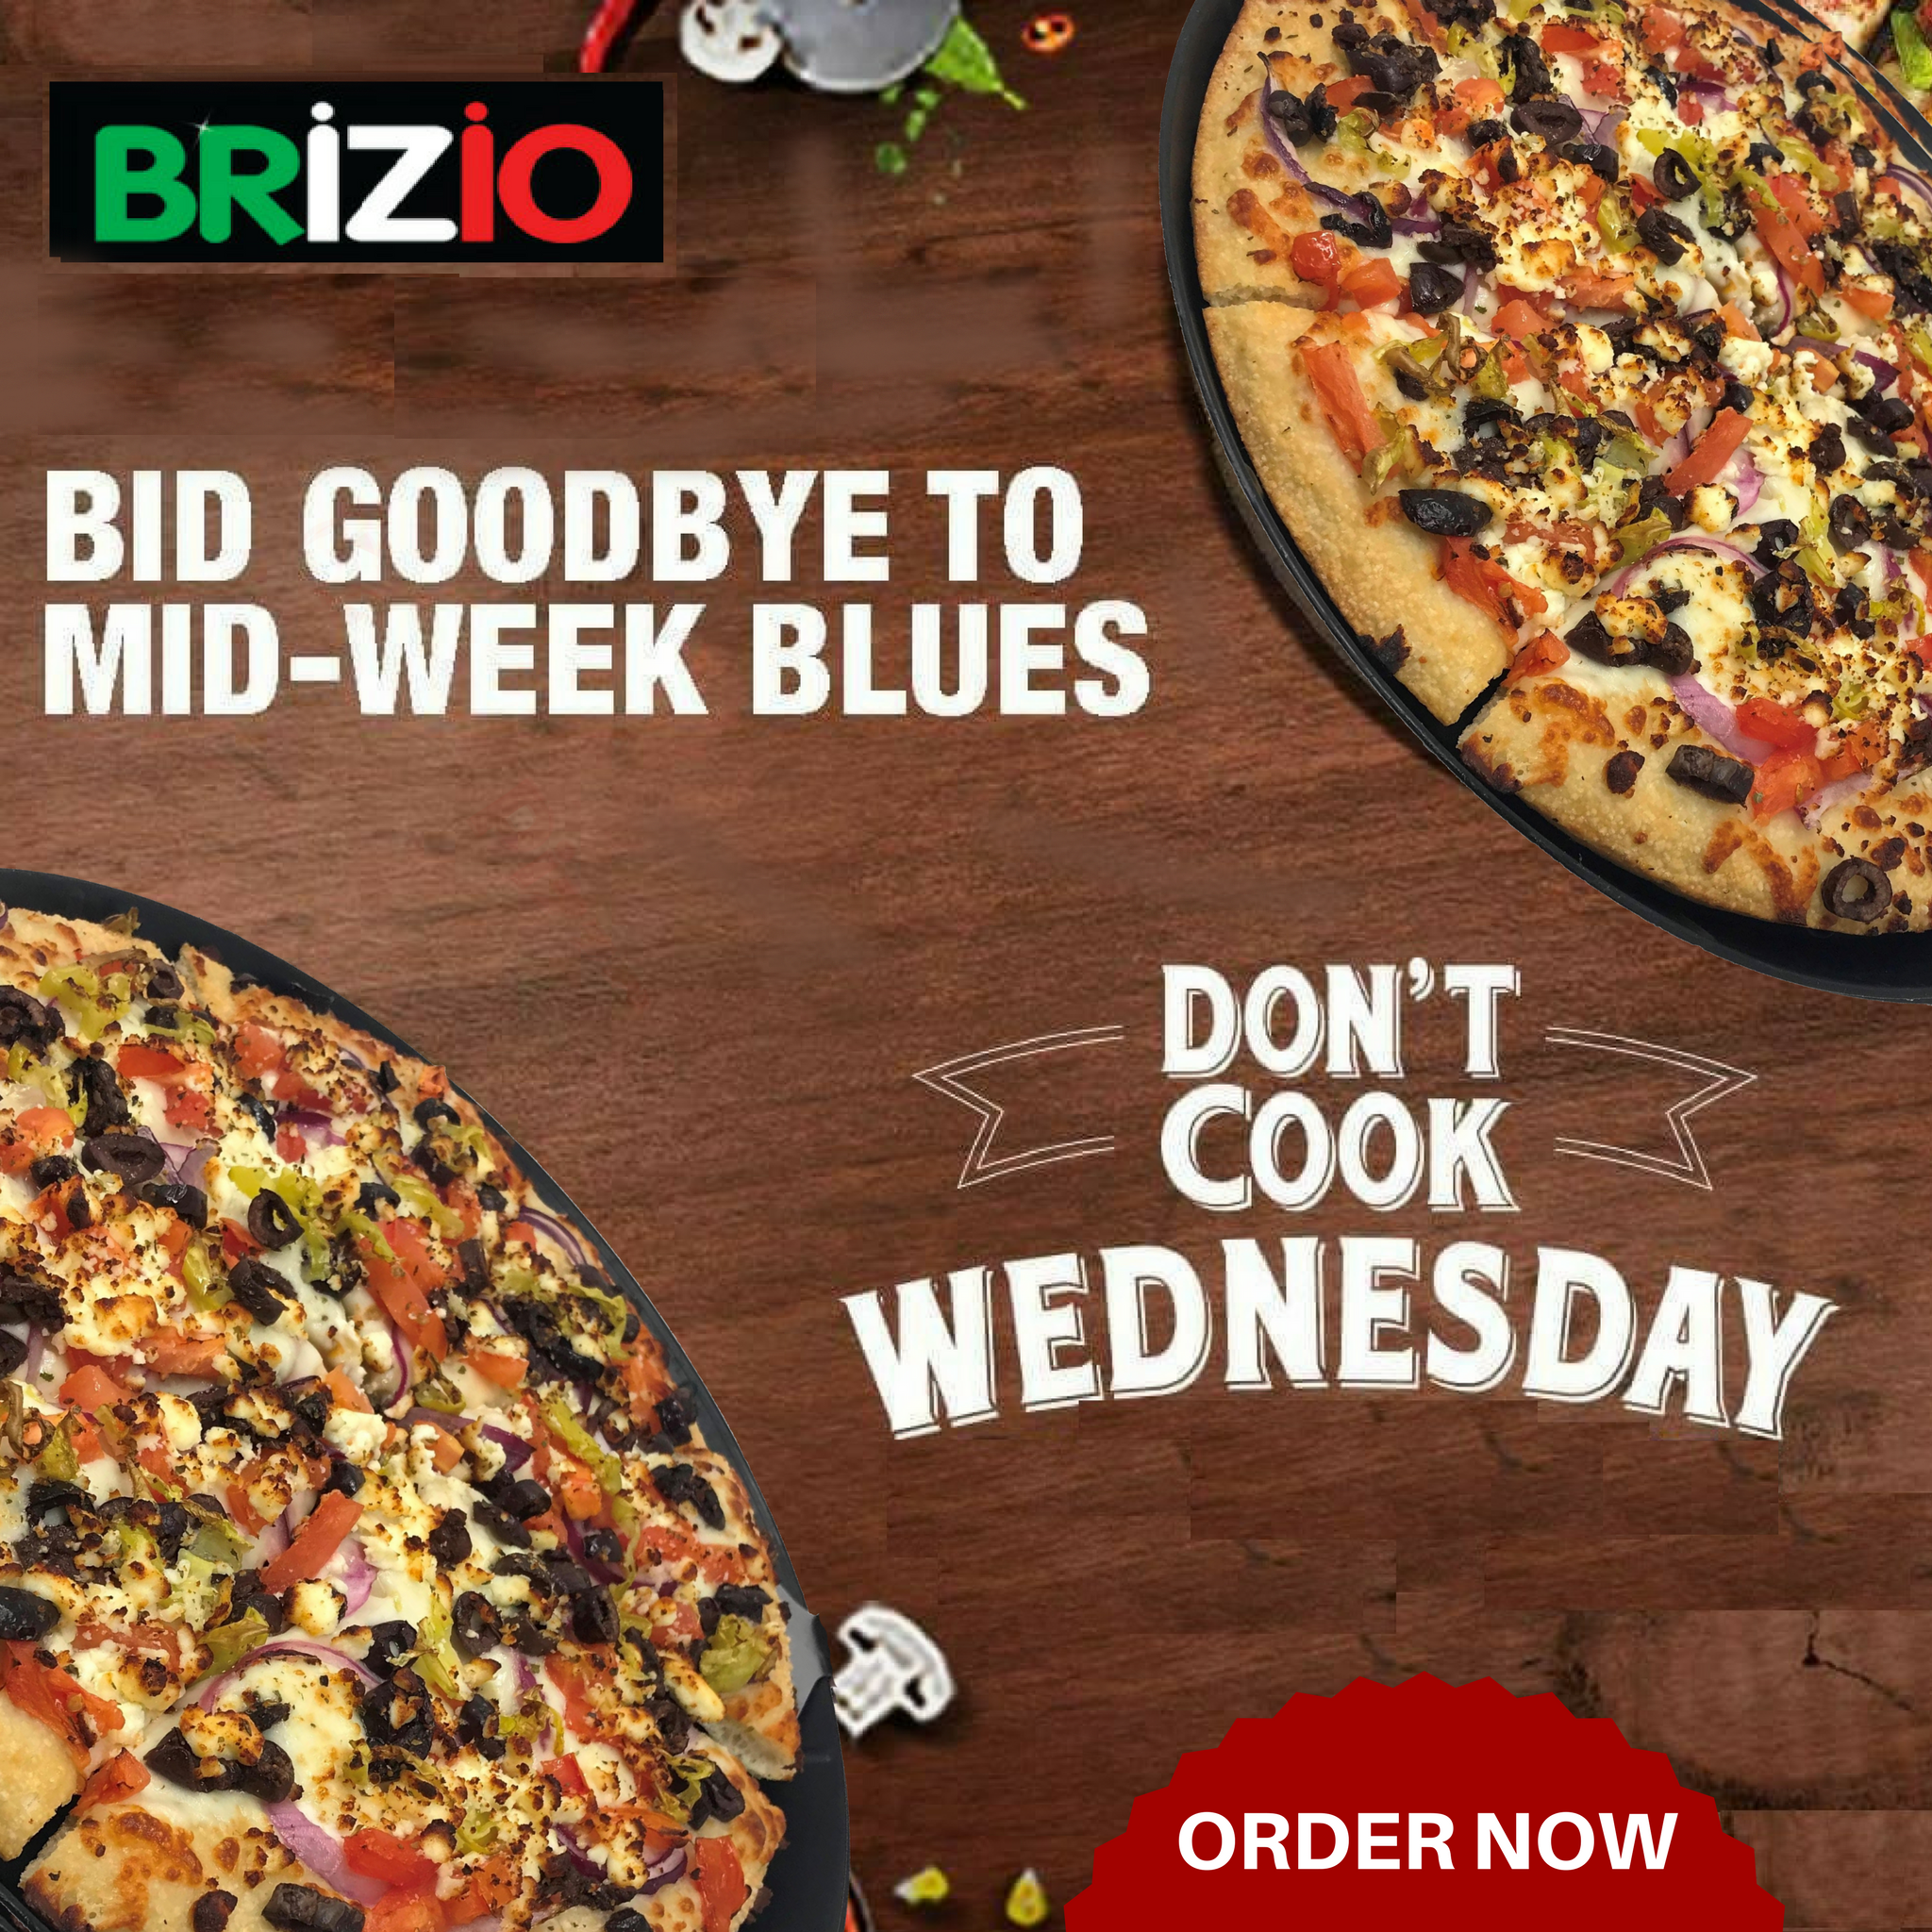 Wednesday Don T Cook Head To Brizio Pizza Order Online At Briziopizza Com Or Call Us At 949 951 7333 For De Good Pizza Pizza Restaurant Pizza Delivery